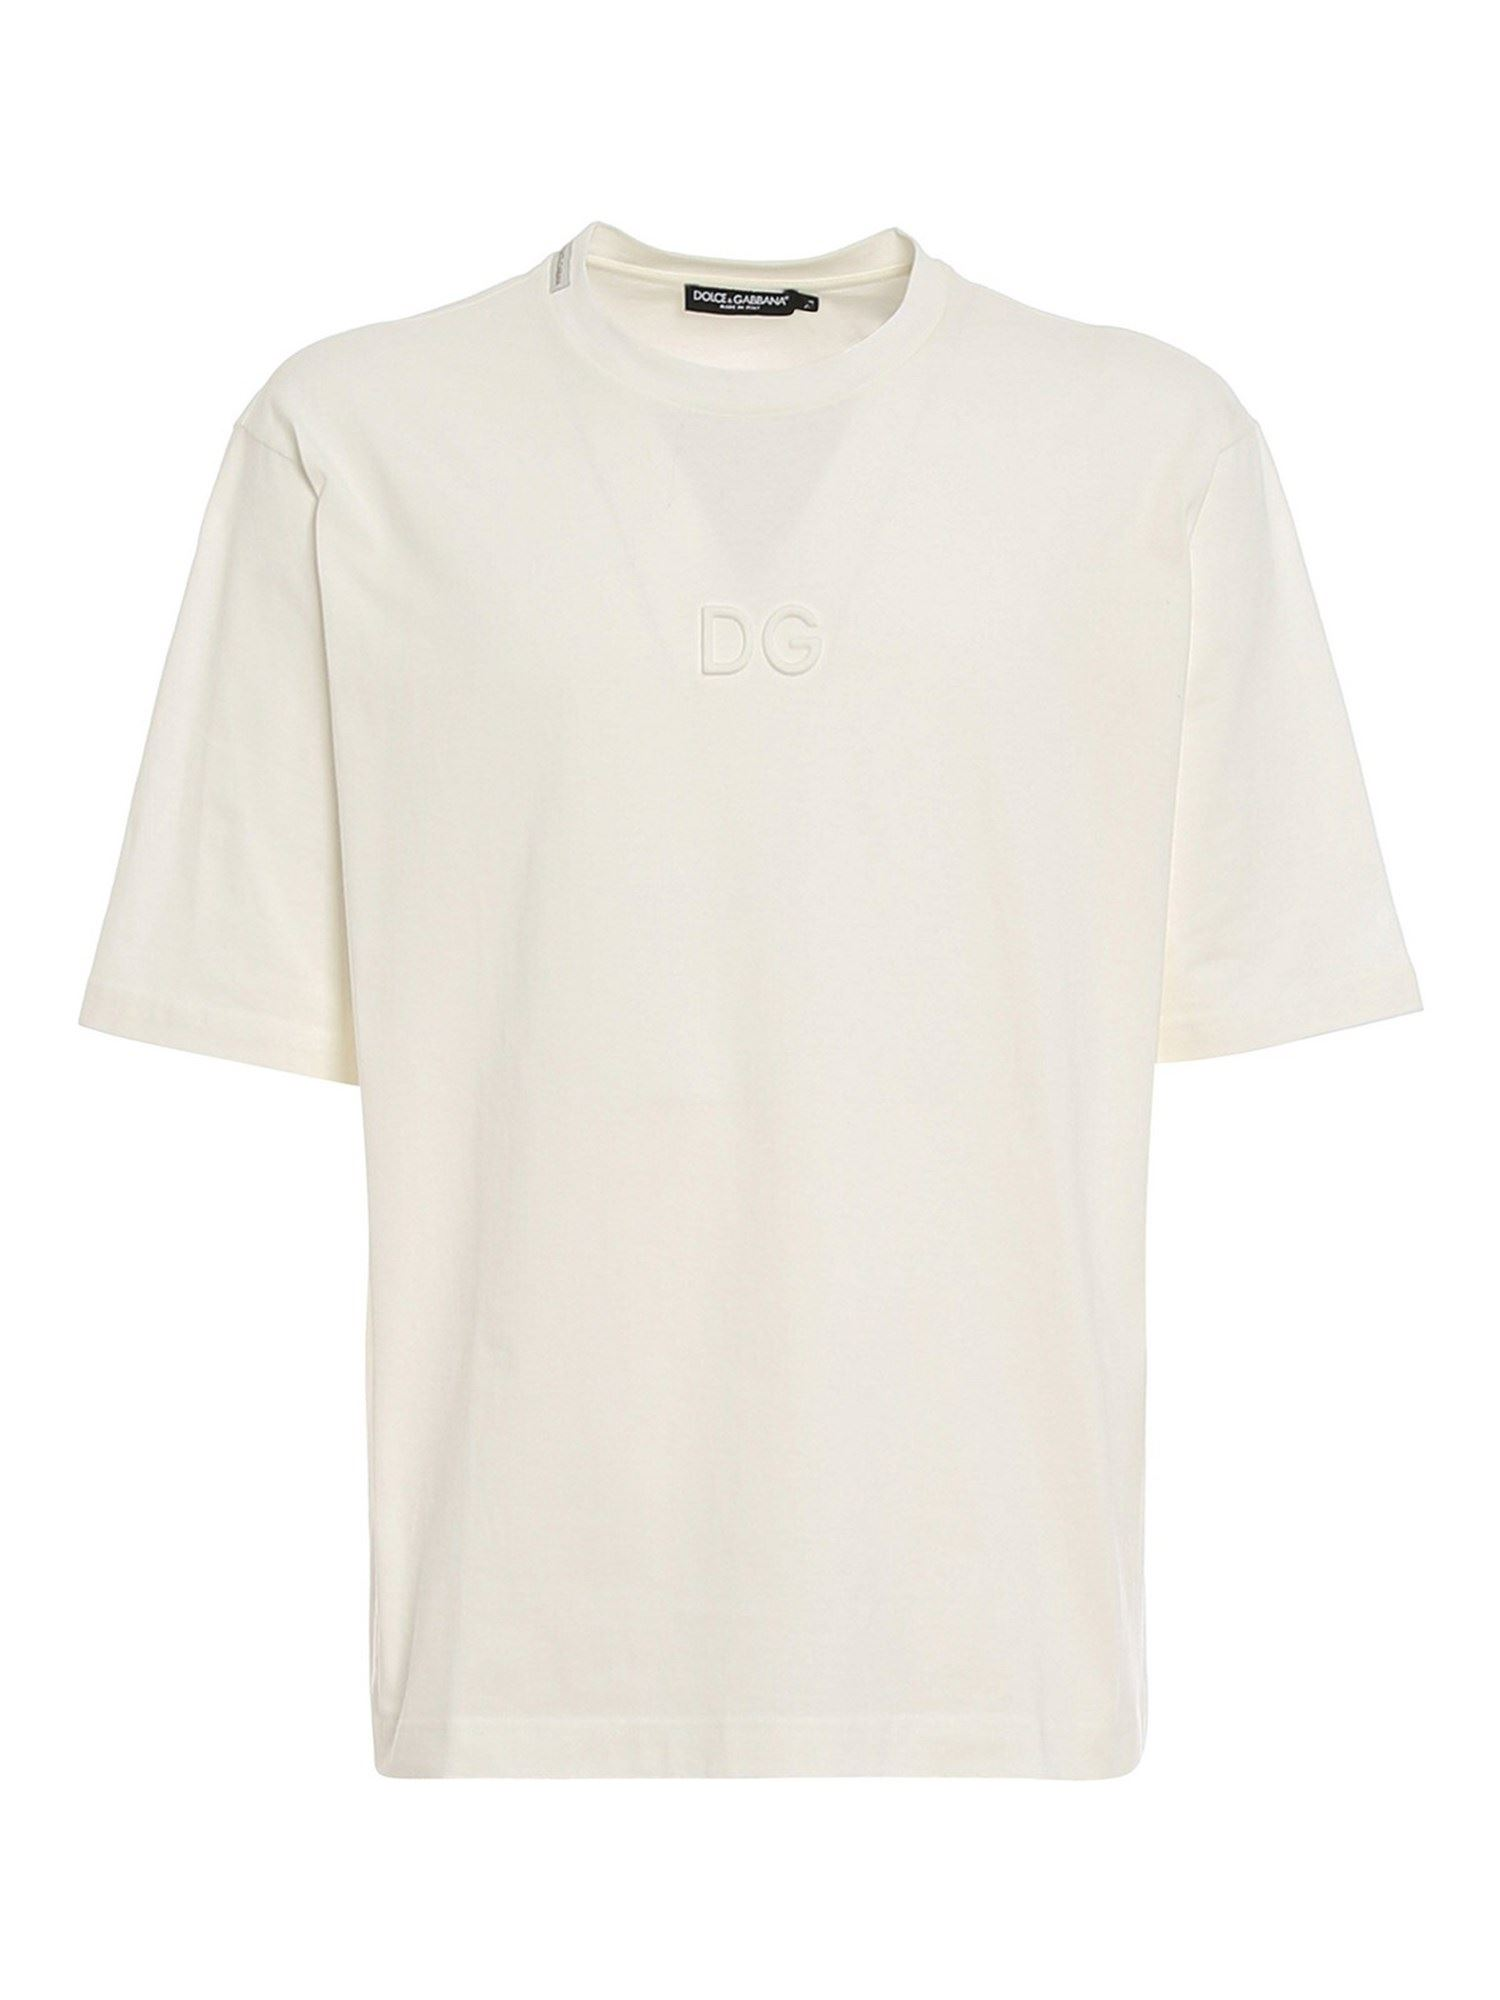 Dolce & Gabbana Cottons EMBOSSED LOGO T-SHIRT IN WHITE